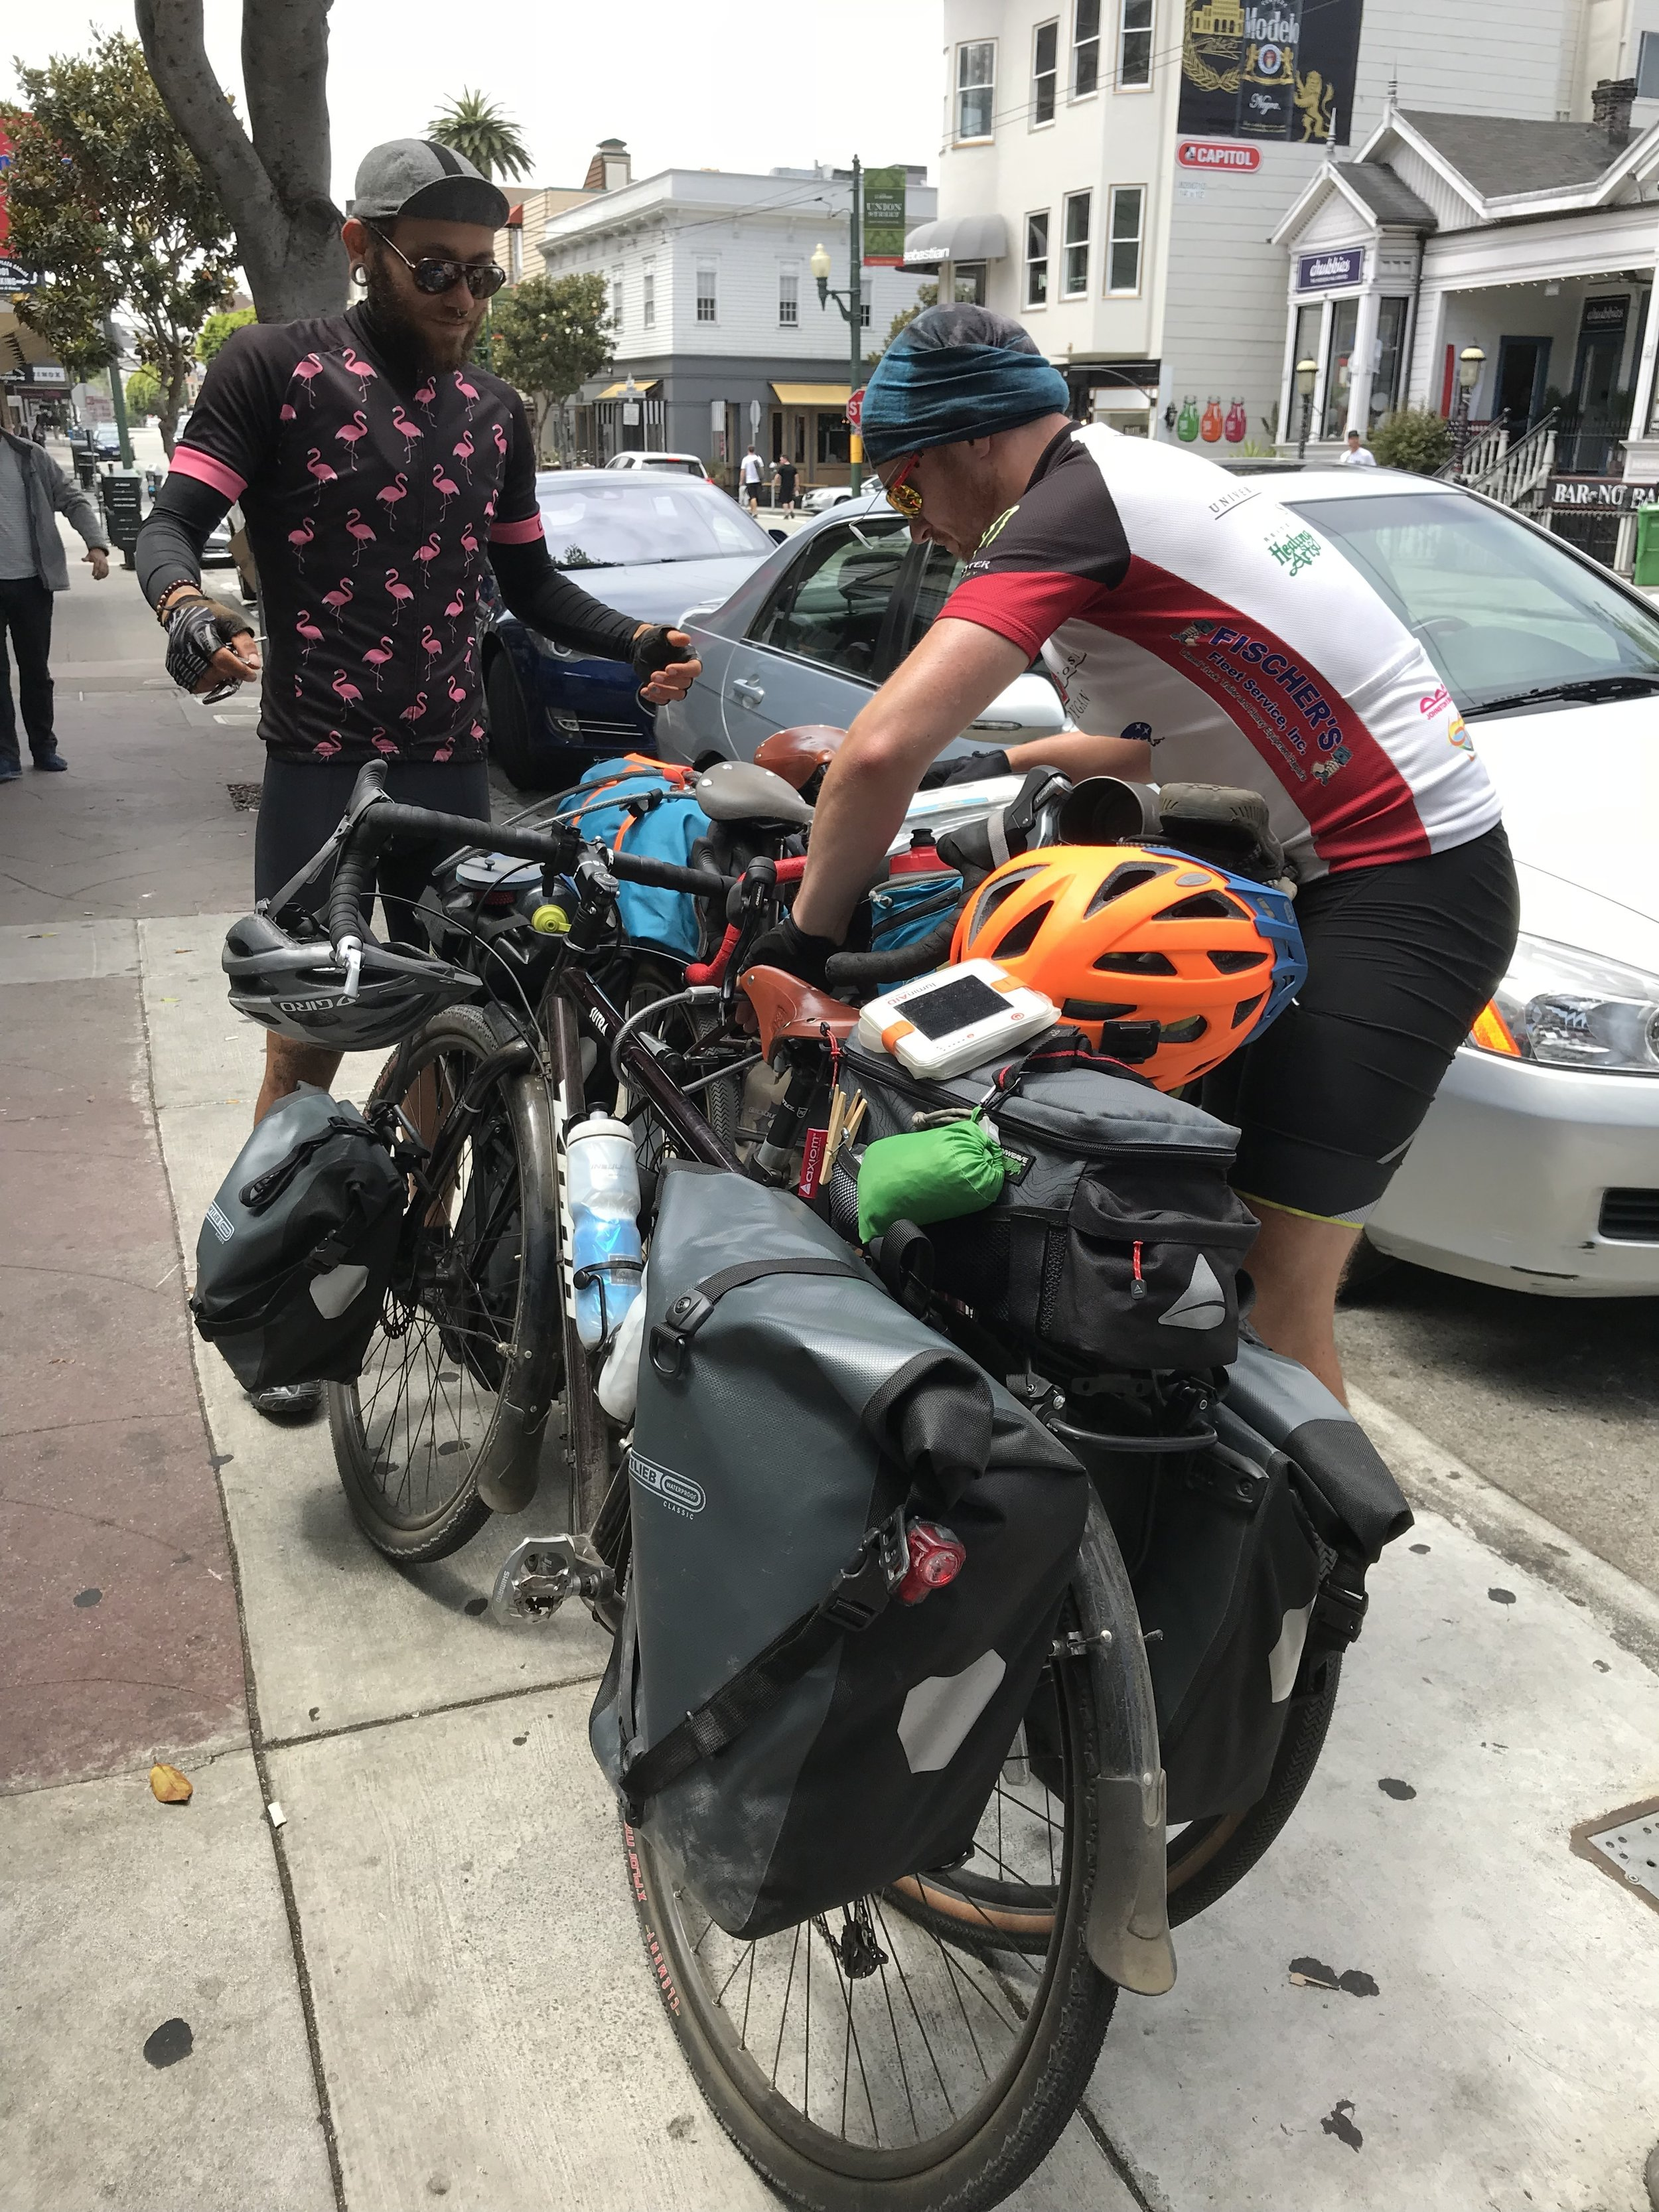 Stopping for lunch in San Francisco and attempting to lock our bikes together.